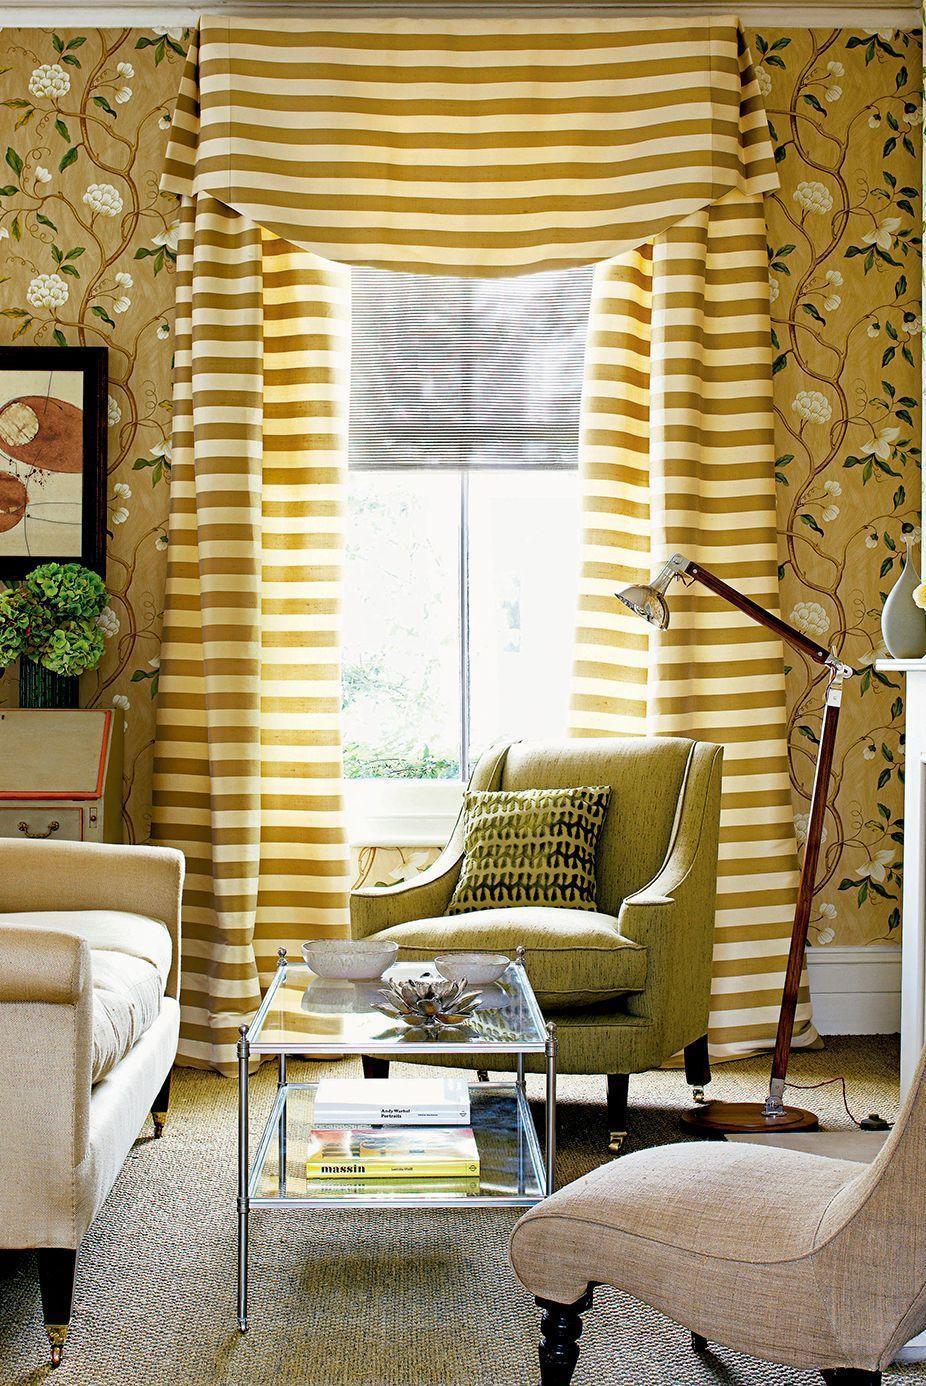 "<p>It's no surprise that natural light can do wonders for a room as well as your mood. Enjoy its benefits by positioning your living room seating near the window and <a href=""https://www.goodhousekeeping.com/home-products/g34524563/best-places-to-buy-curtains/"" rel=""nofollow noopener"" target=""_blank"" data-ylk=""slk:choosing window treatments"" class=""link rapid-noclick-resp"">choosing window treatments</a> that allow light to easily pour into your space. </p>"